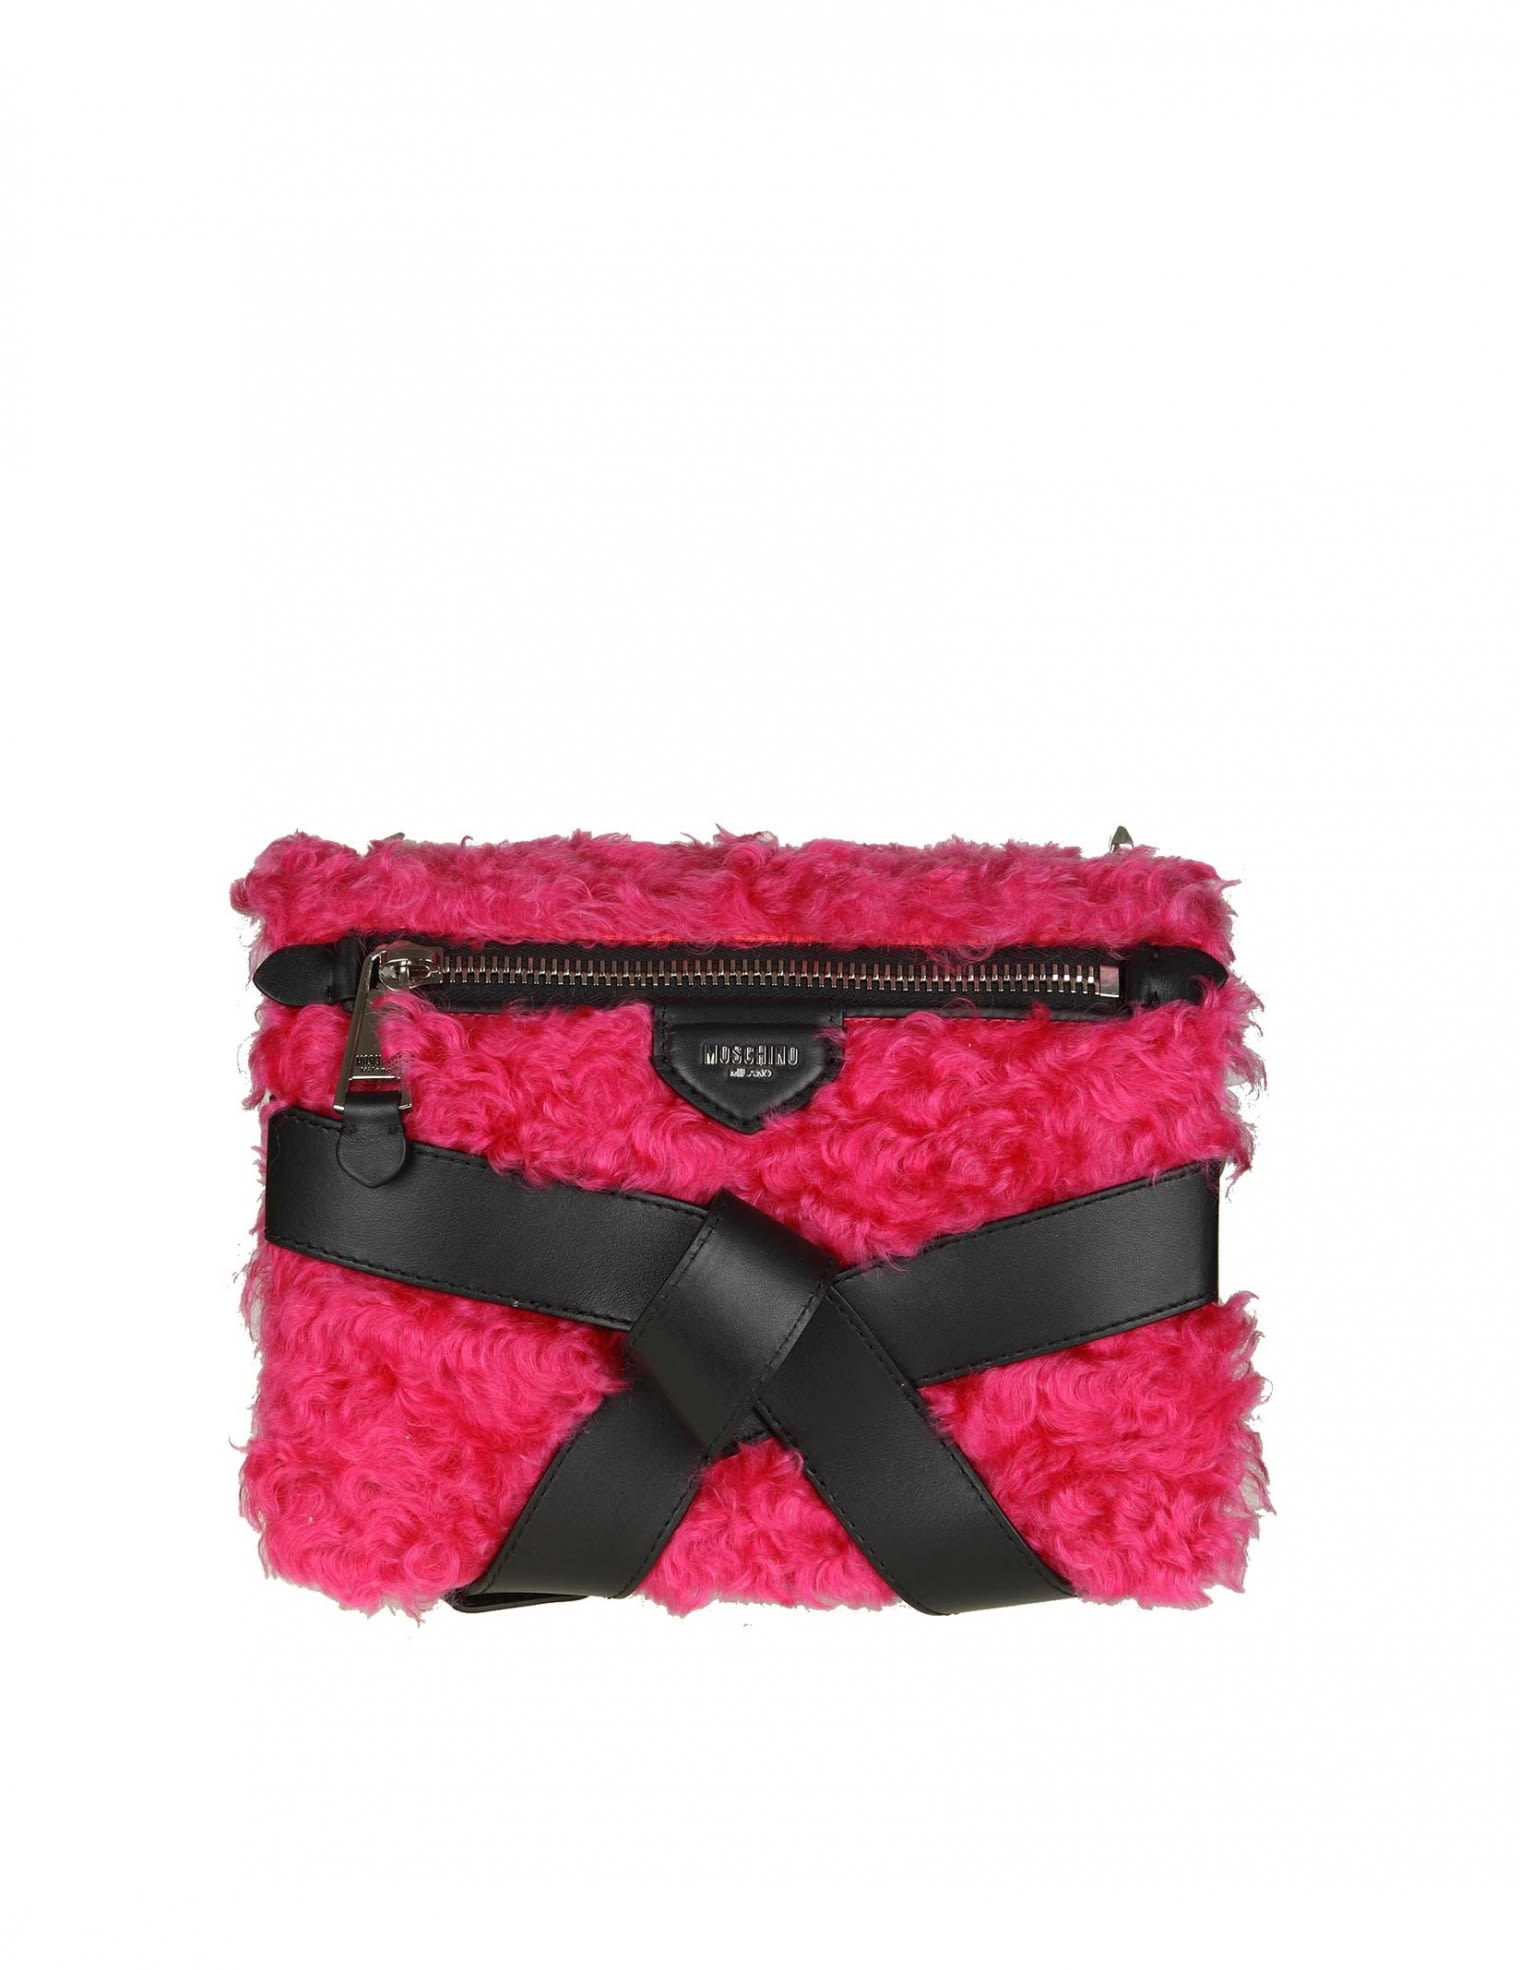 Moschino Leathers SHOULDER BAG IN LEATHER AND MOHAIR COLOR BLACK AND FUCHSIA